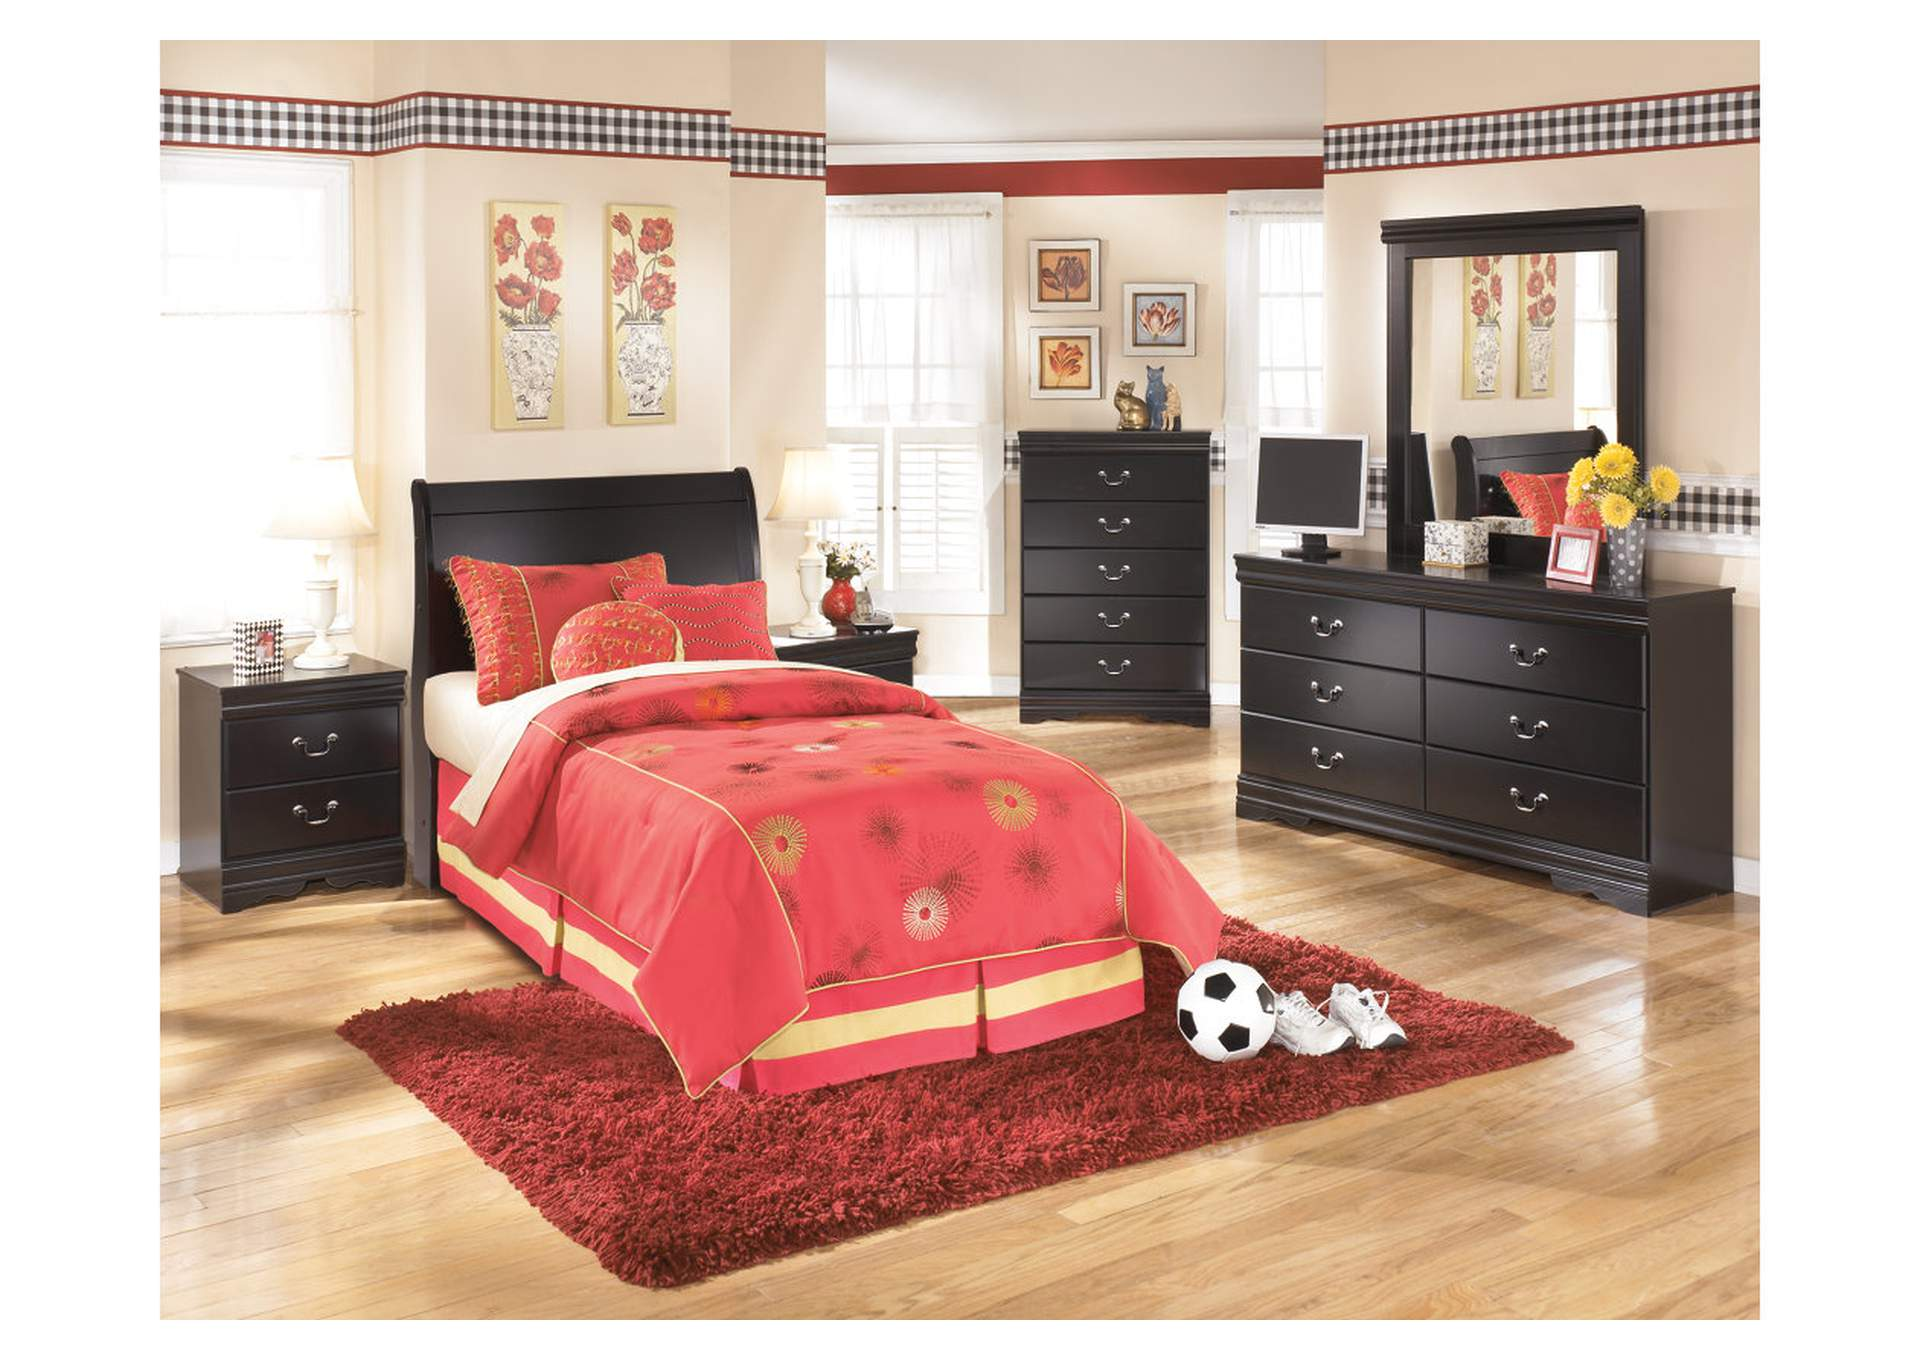 Huey Vineyard Full Headboard w/Dresser, Mirror, Drawer Chest & Nightstand,Signature Design By Ashley